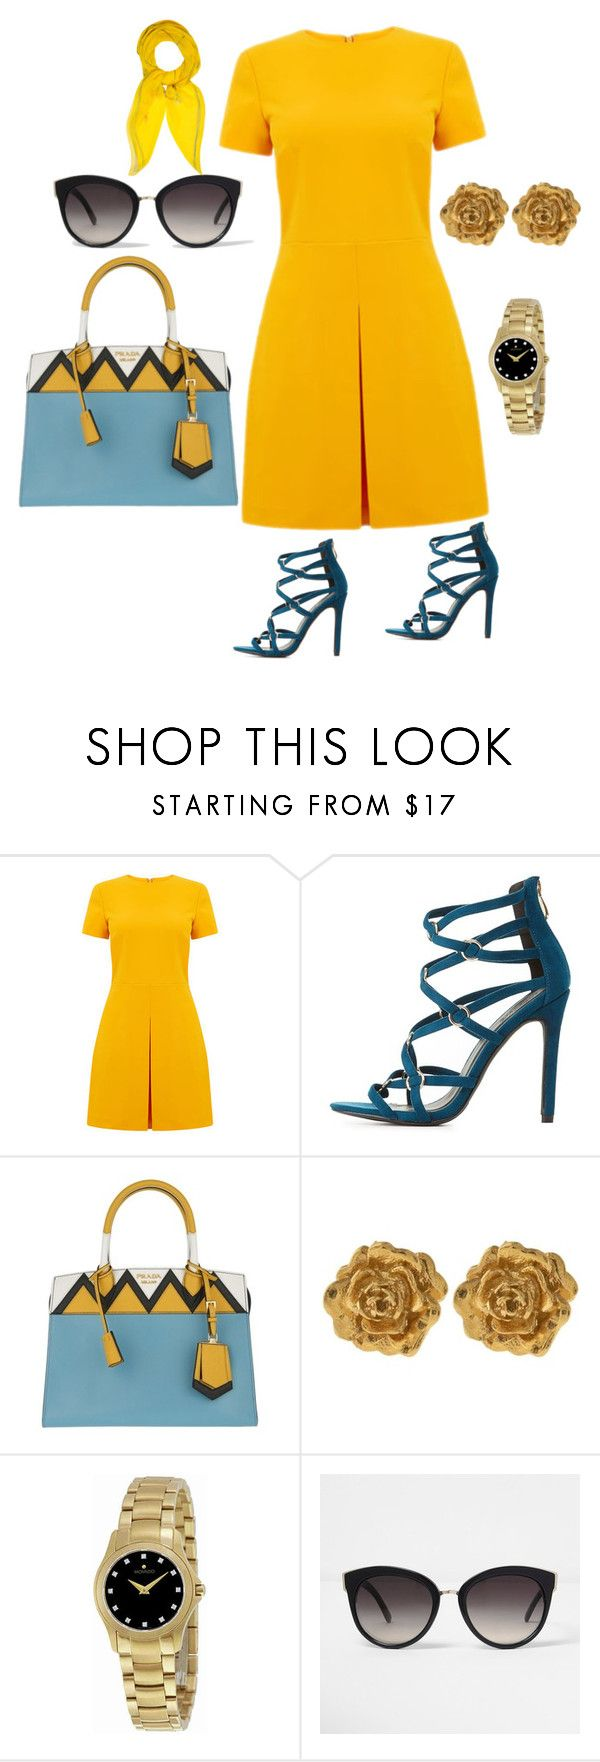 """Untitled #746"" by stylemirror ❤ liked on Polyvore featuring Warehouse, Charlotte Russe, Prada, Liberty, Movado, River Island and Hermès"